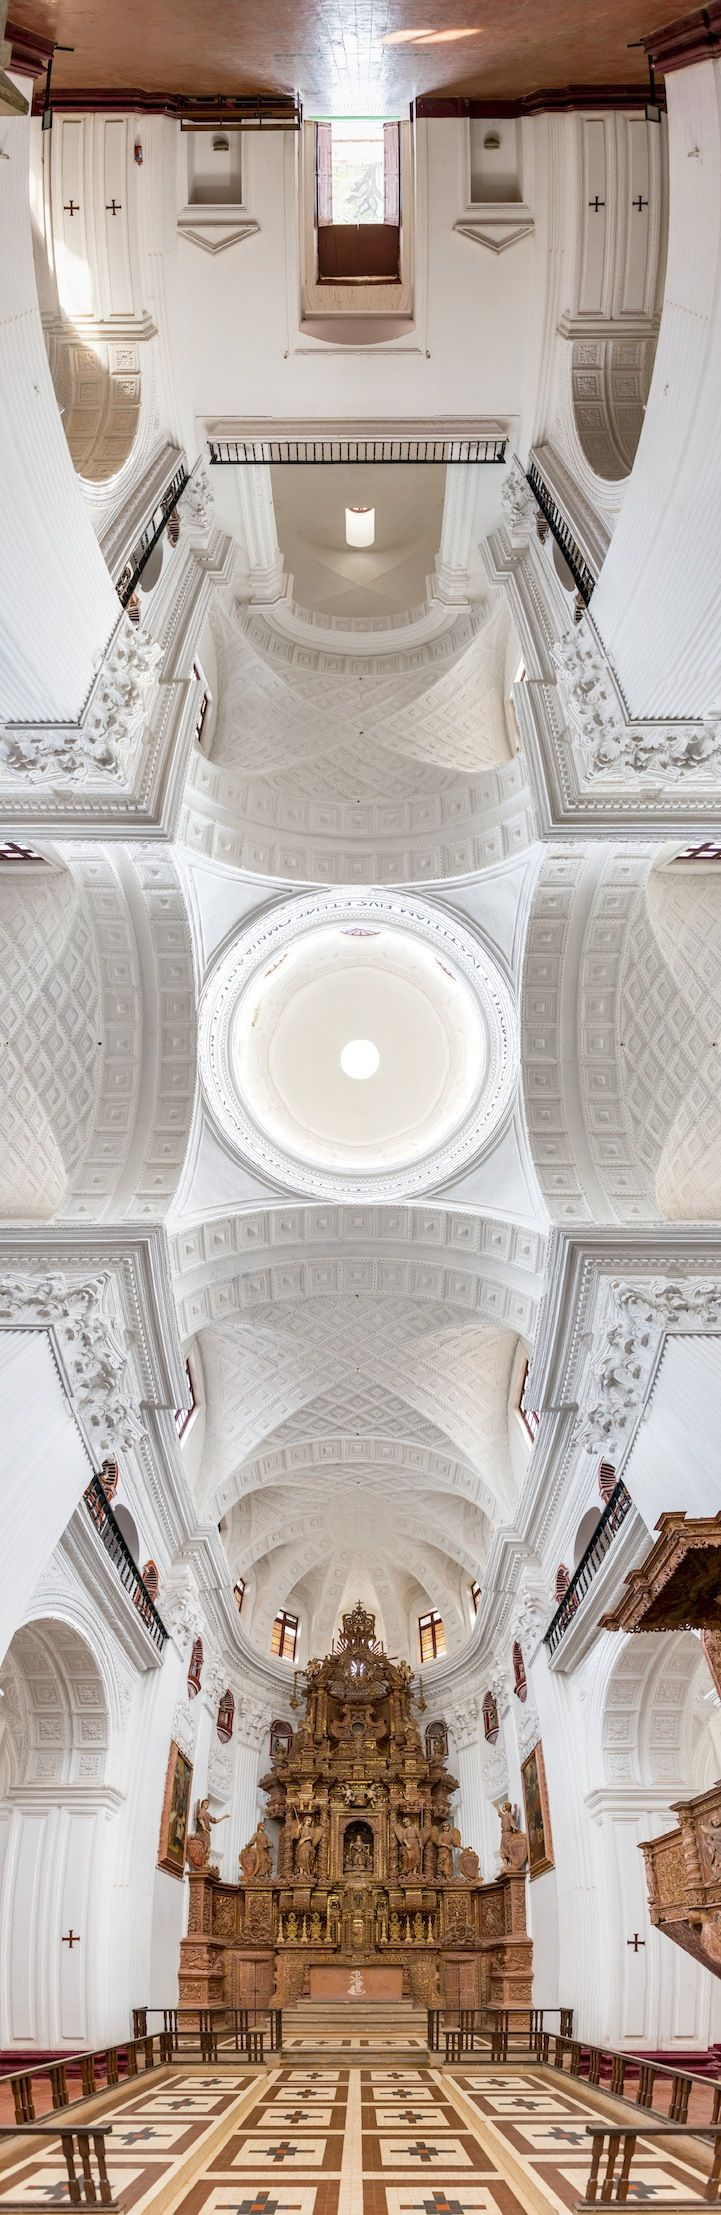 Impressive Vertical Panoramas of Churches Around the World by Richard Silver